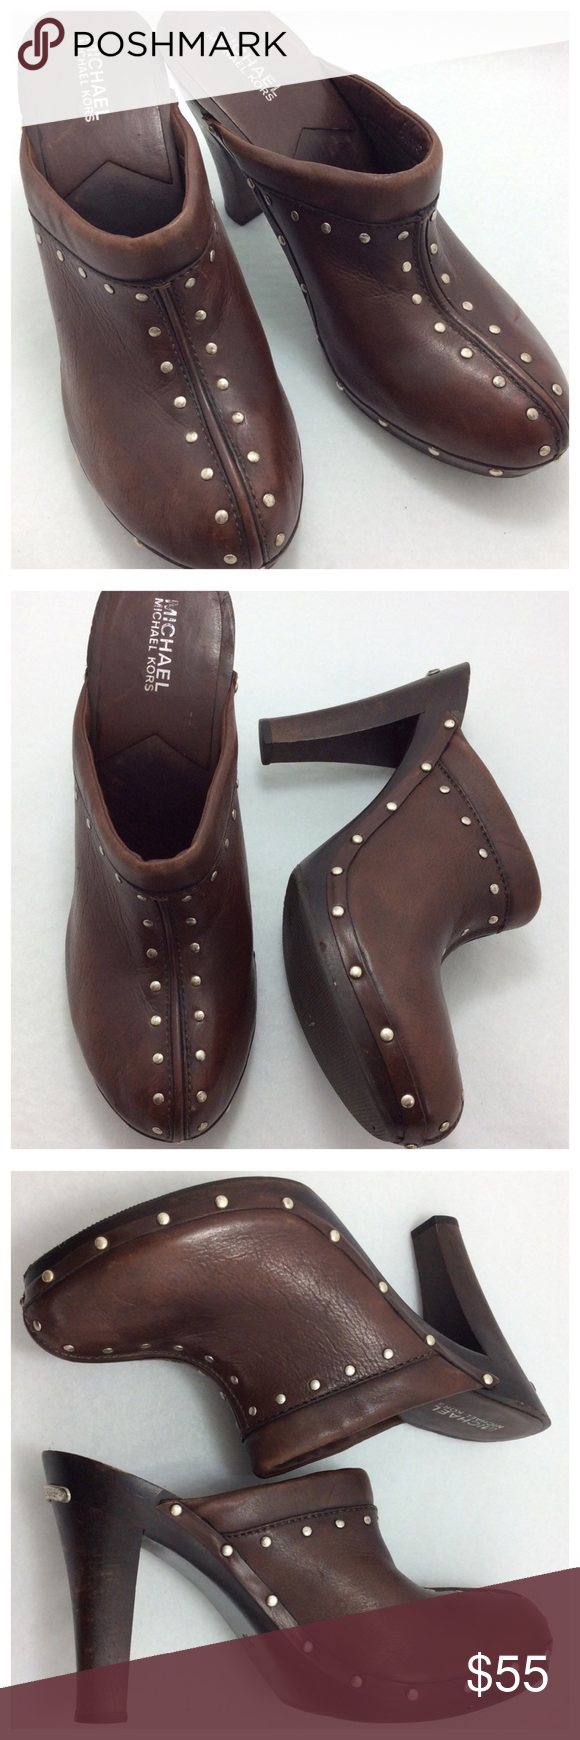 """MK Heeled Clogs Signature MK grommets embellish this pair of beautiful chocolate leather clogs. Silver logo plate on wooden 4.5"""" heel. Previously worn, signs on heel, in otherwise great condition. True to size 10 MICHAEL Michael Kors Shoes Mules & Clogs"""